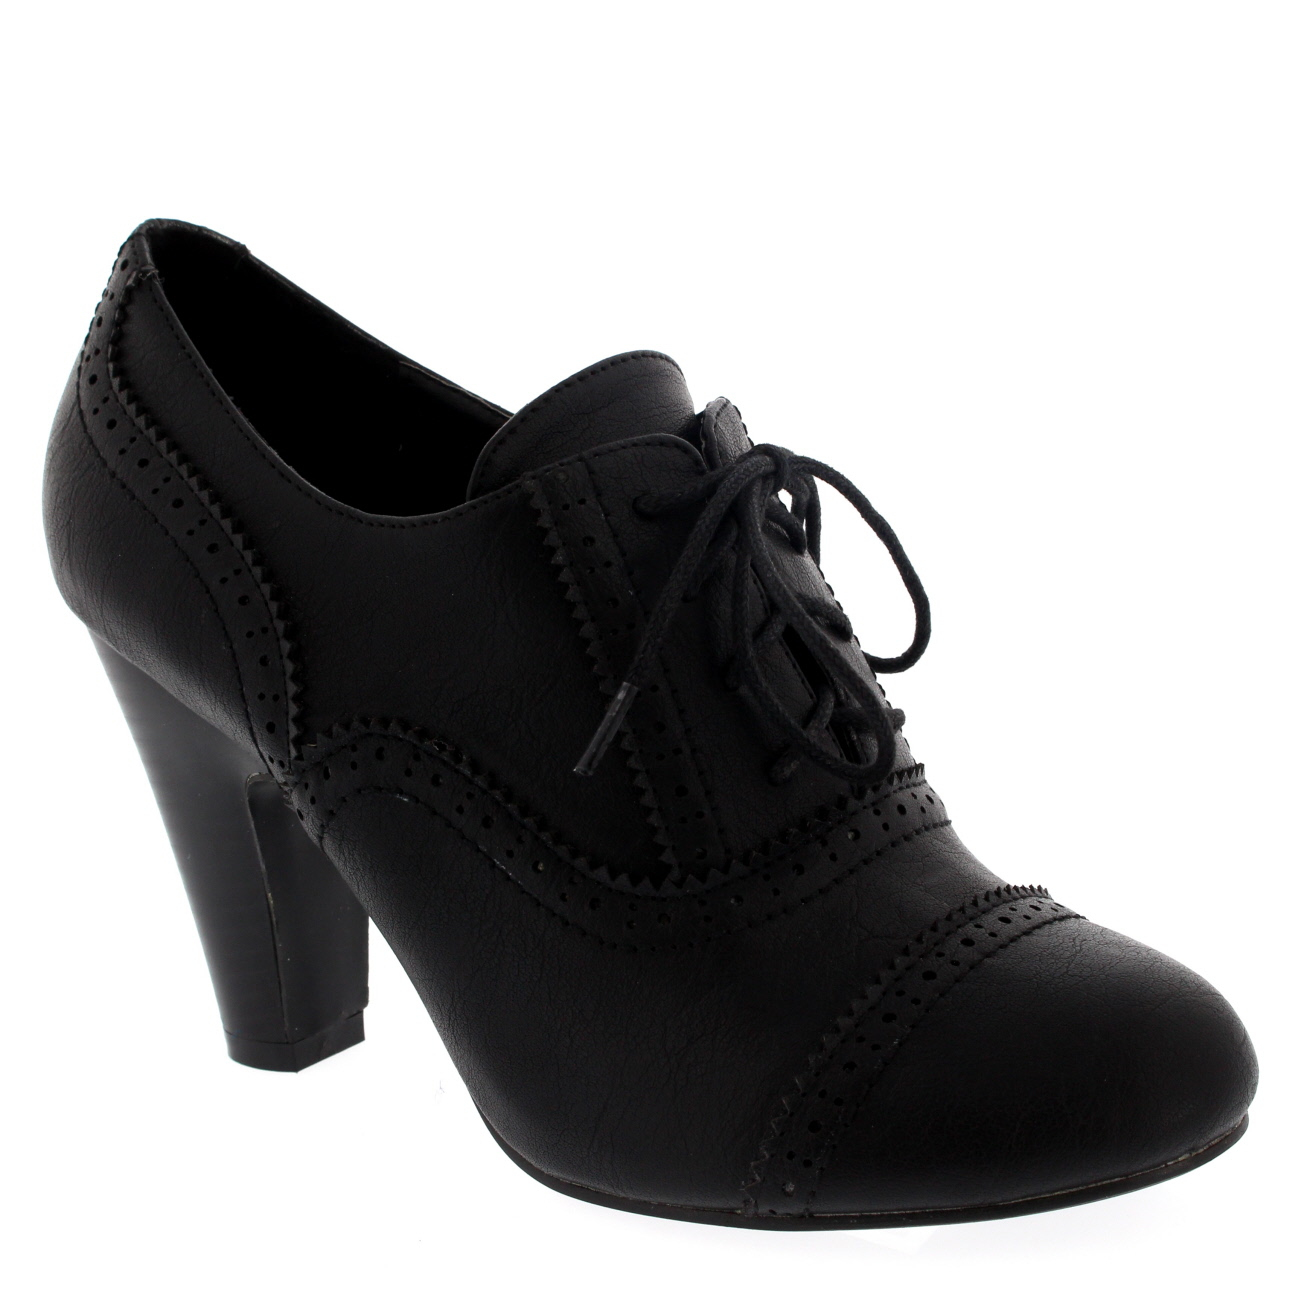 Mary Jane High Heel Shoes Size